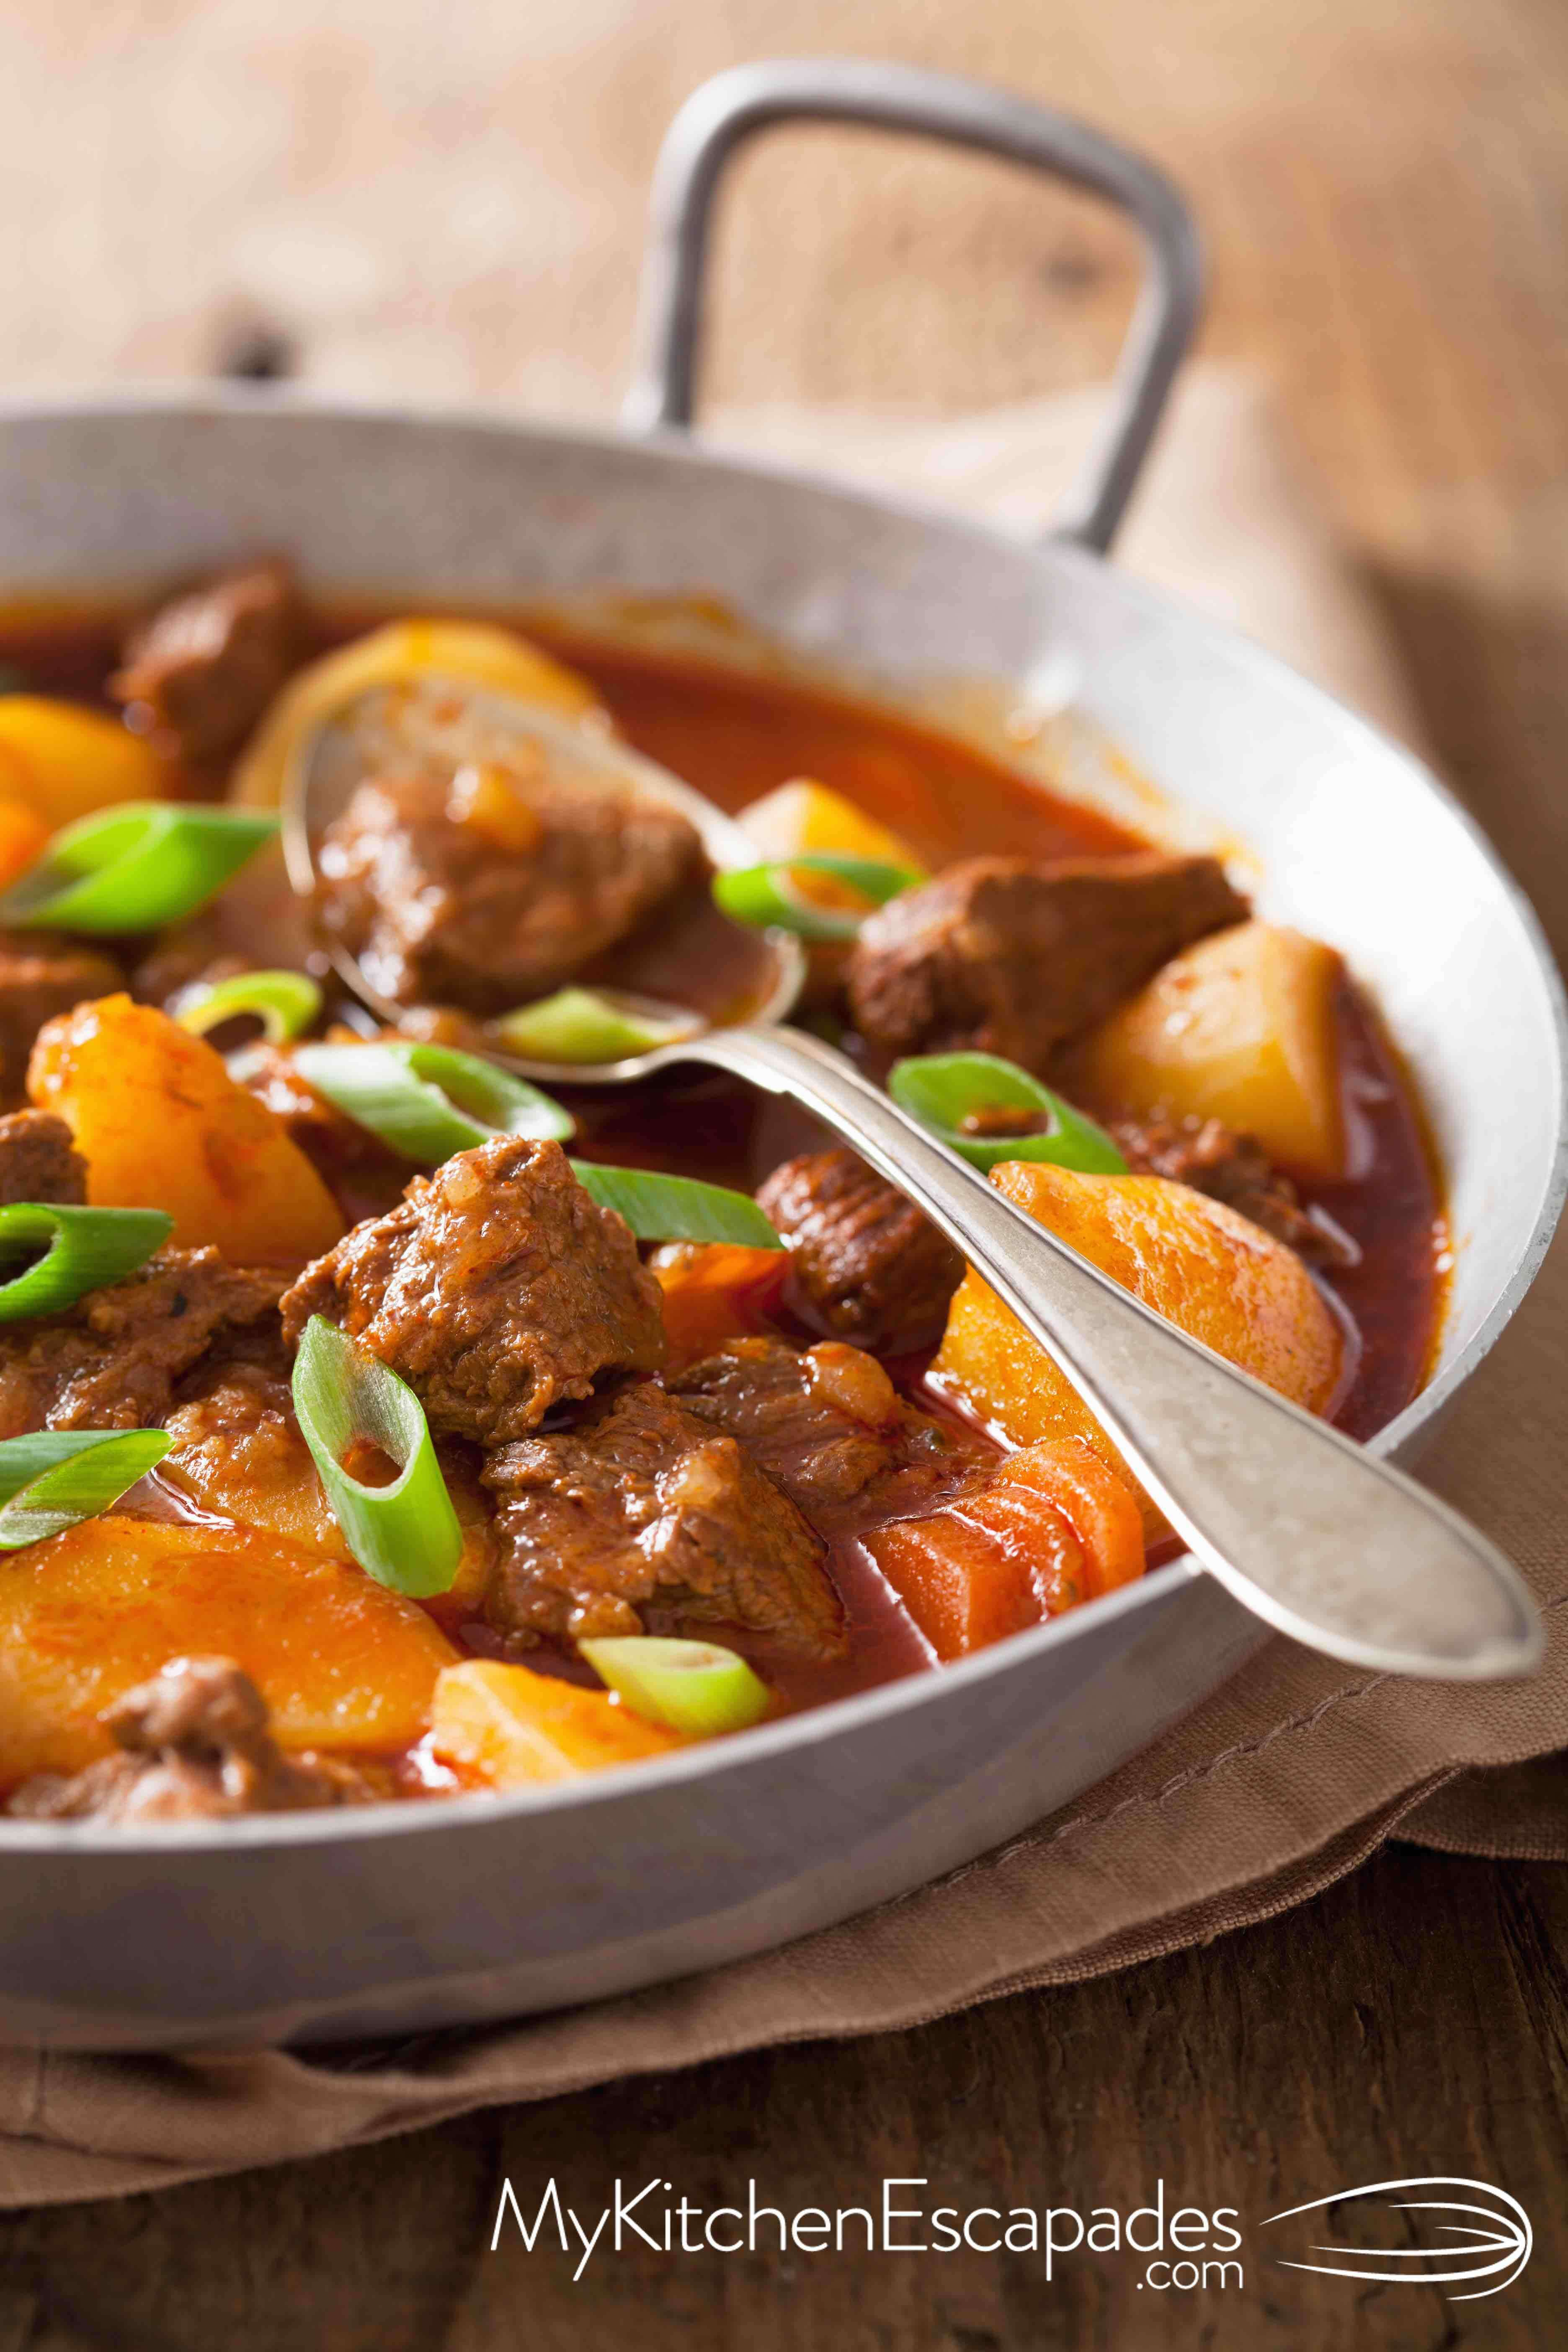 Hearty Beef Stew with Yukon Gold Potatoes